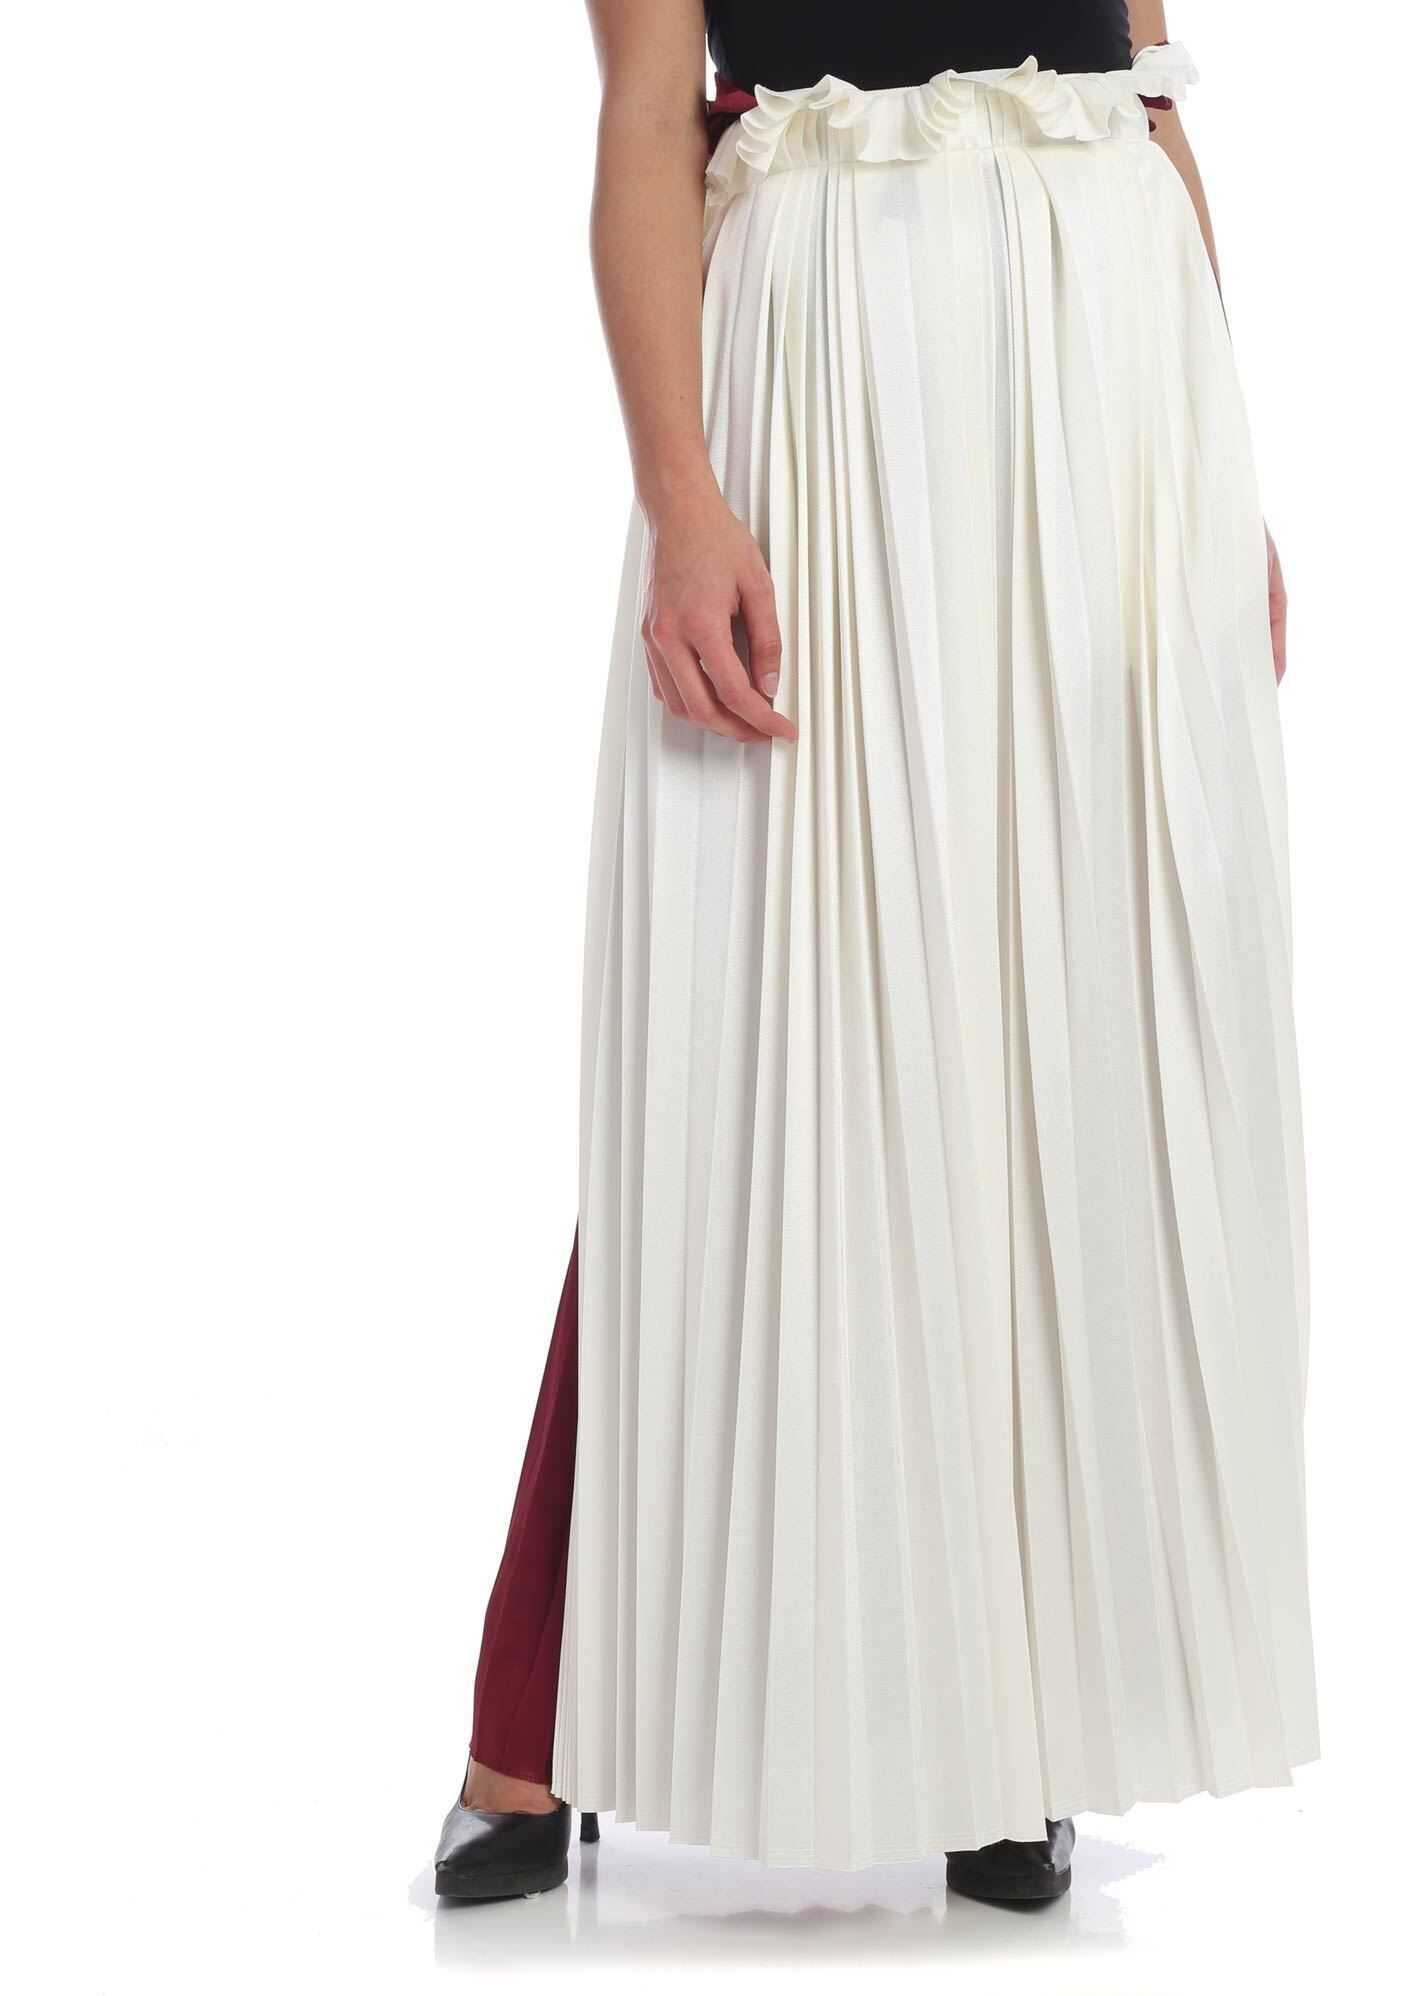 Golden Goose Gigliola Skirt In White And Burgundy White